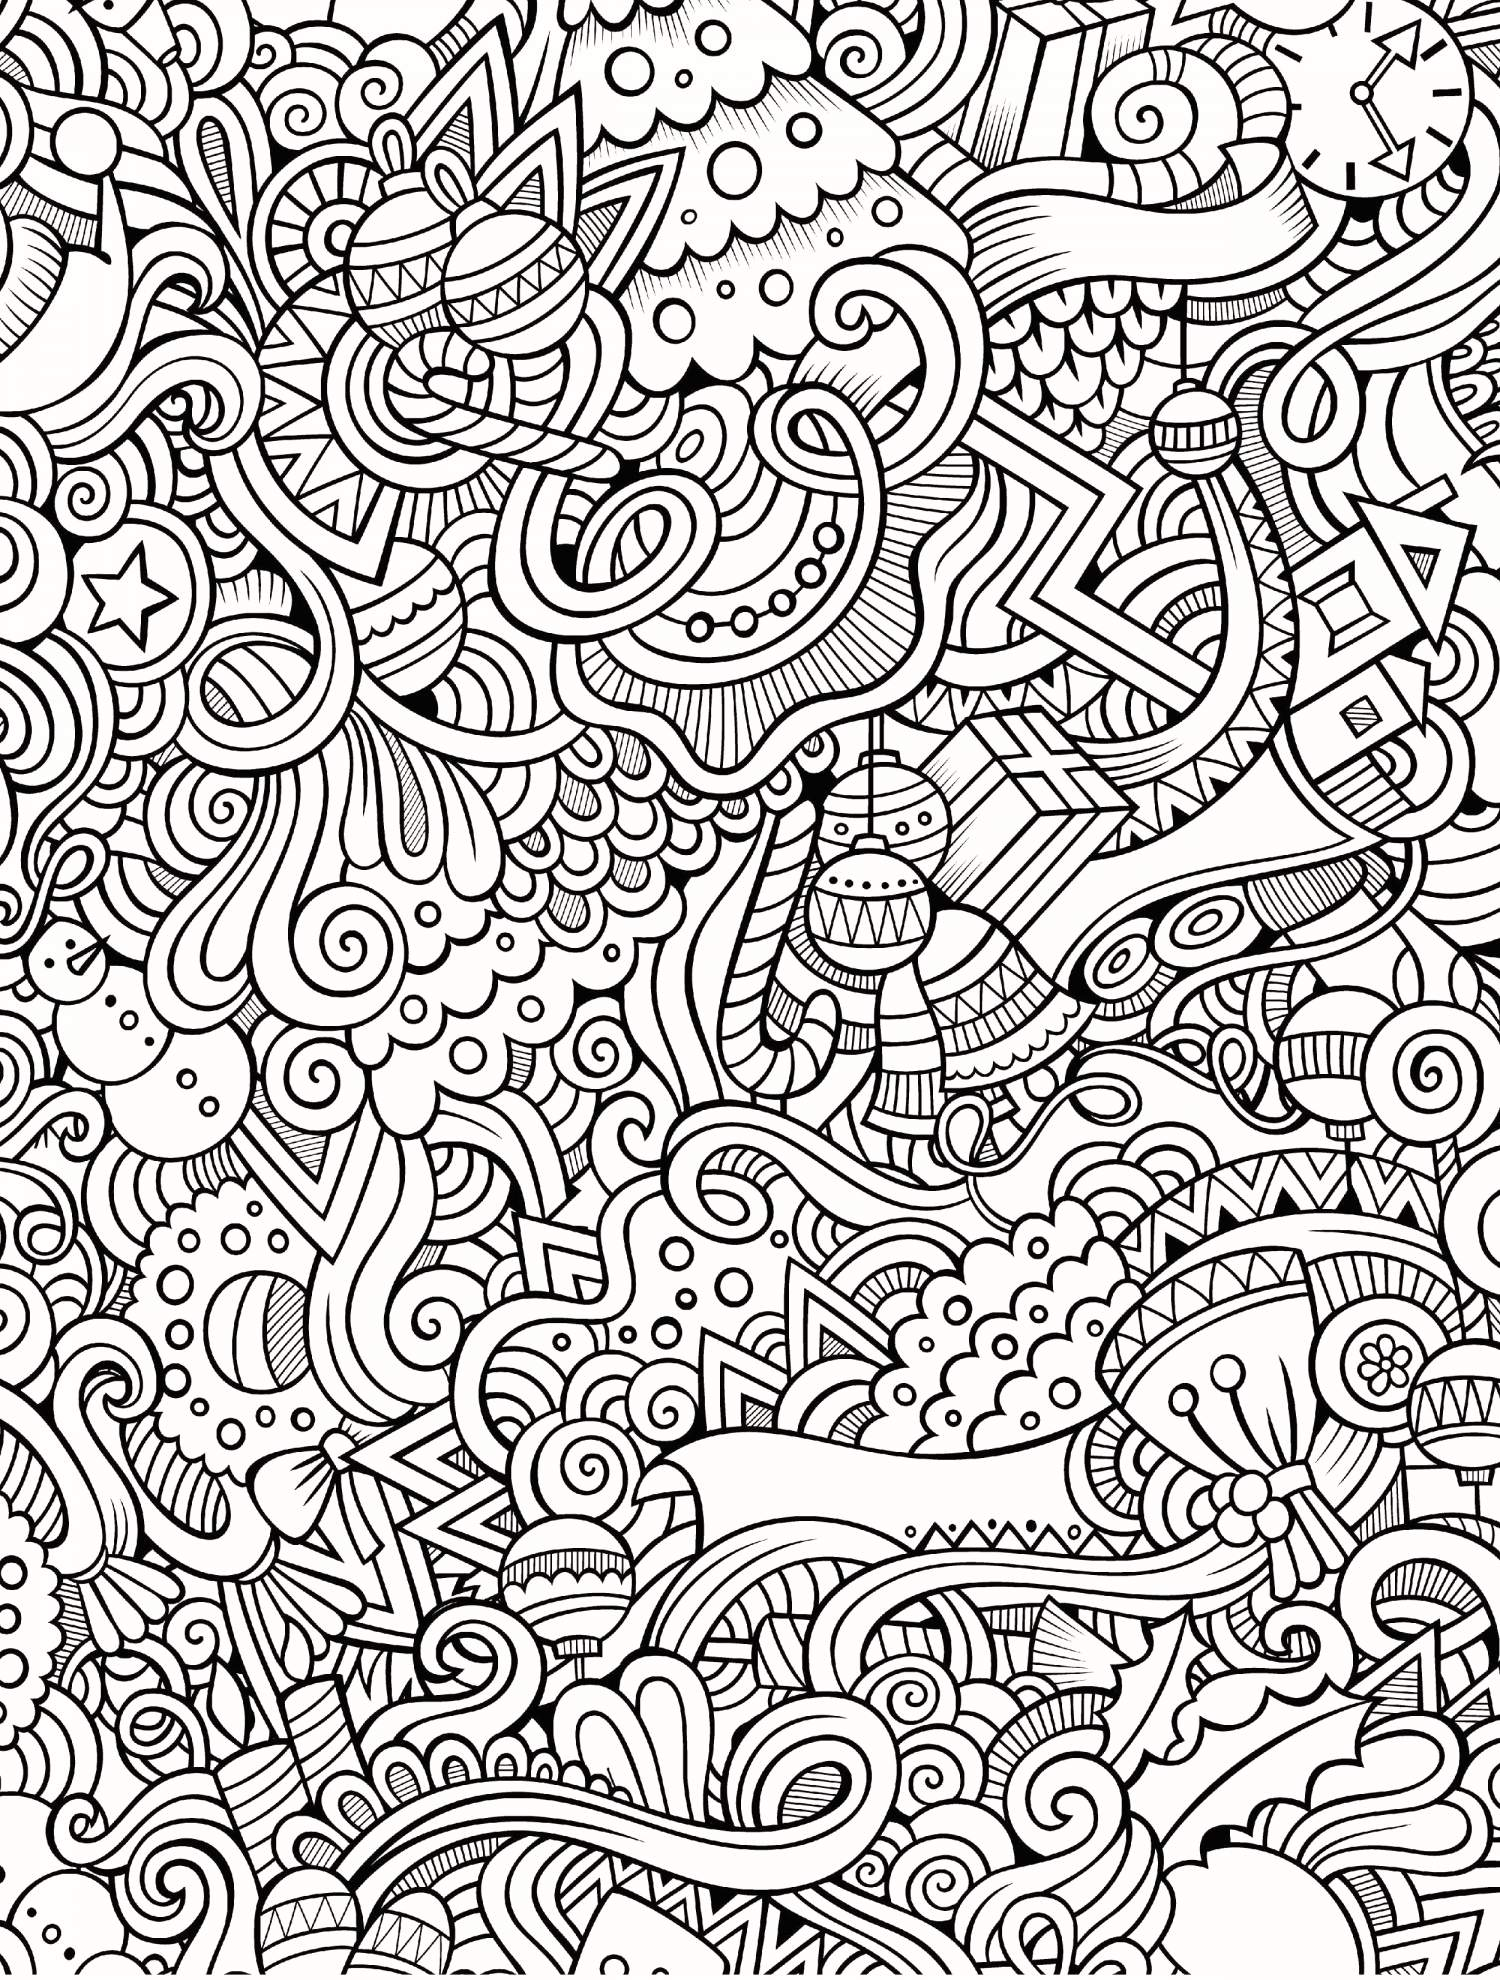 Christmas Coloring Pages That Are Printable With Free Scooby Doo